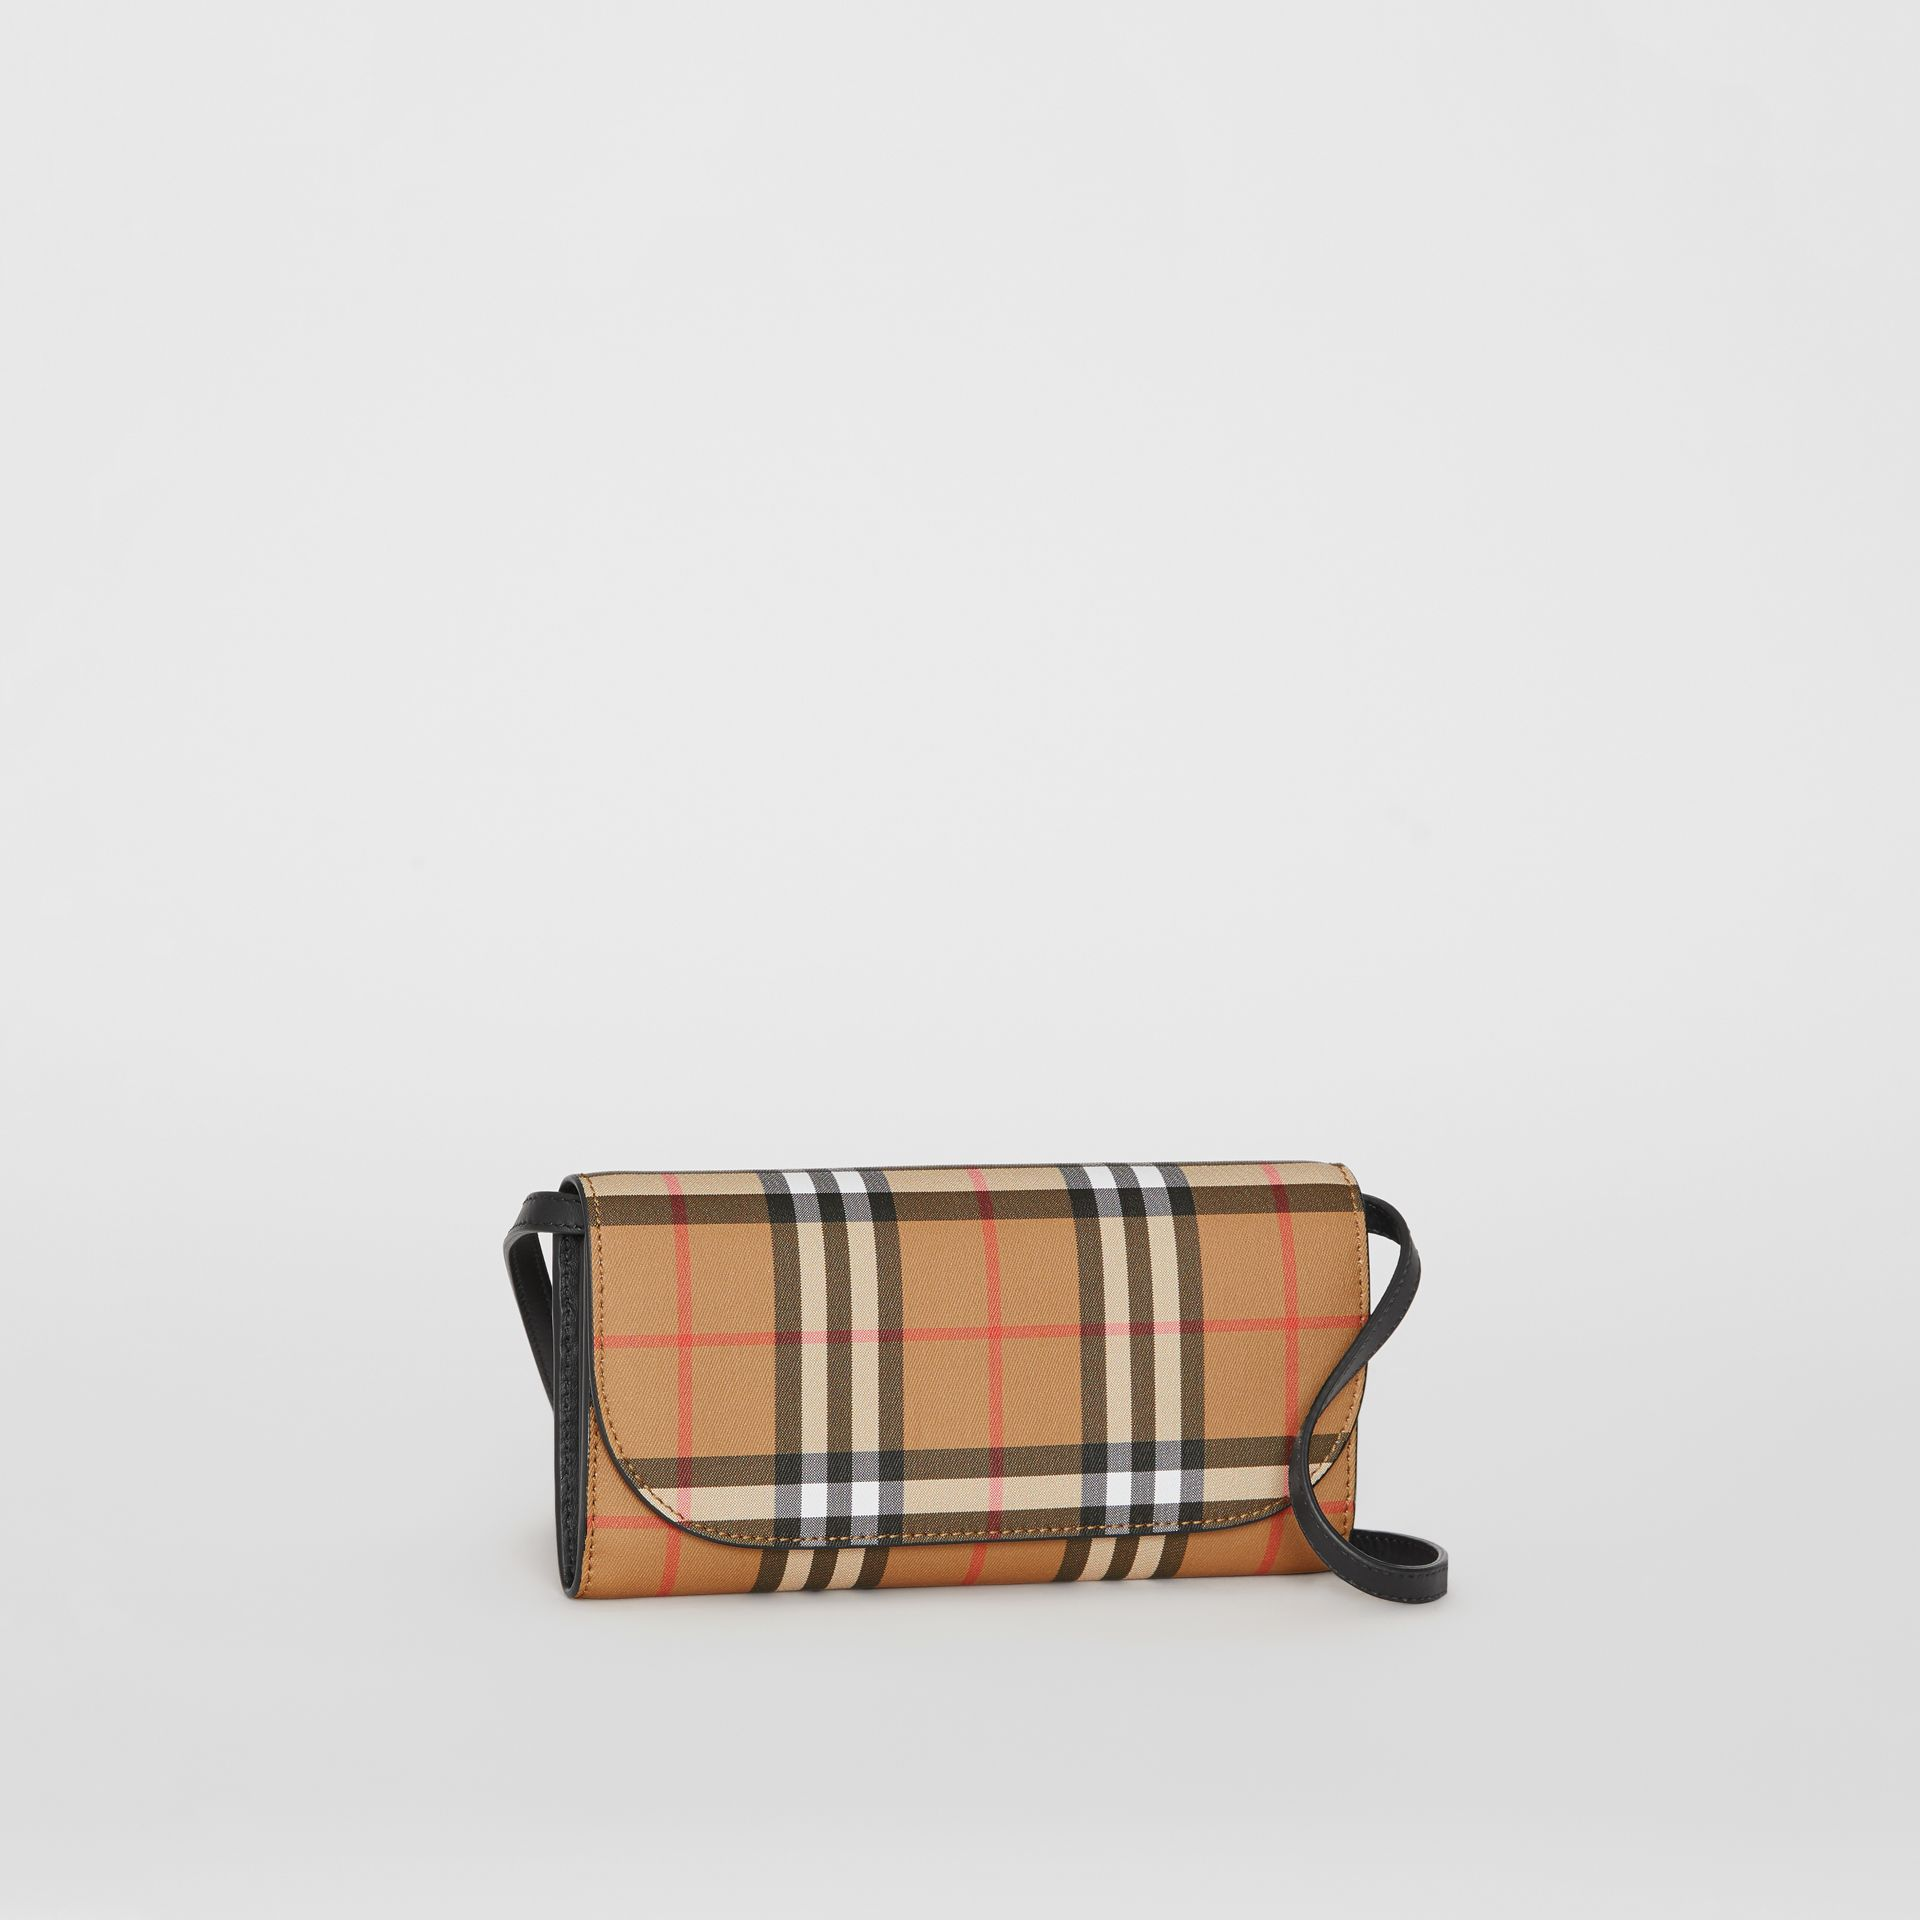 Detachable Strap Vintage Check Leather Wallet in Black - Women | Burberry United States - gallery image 6